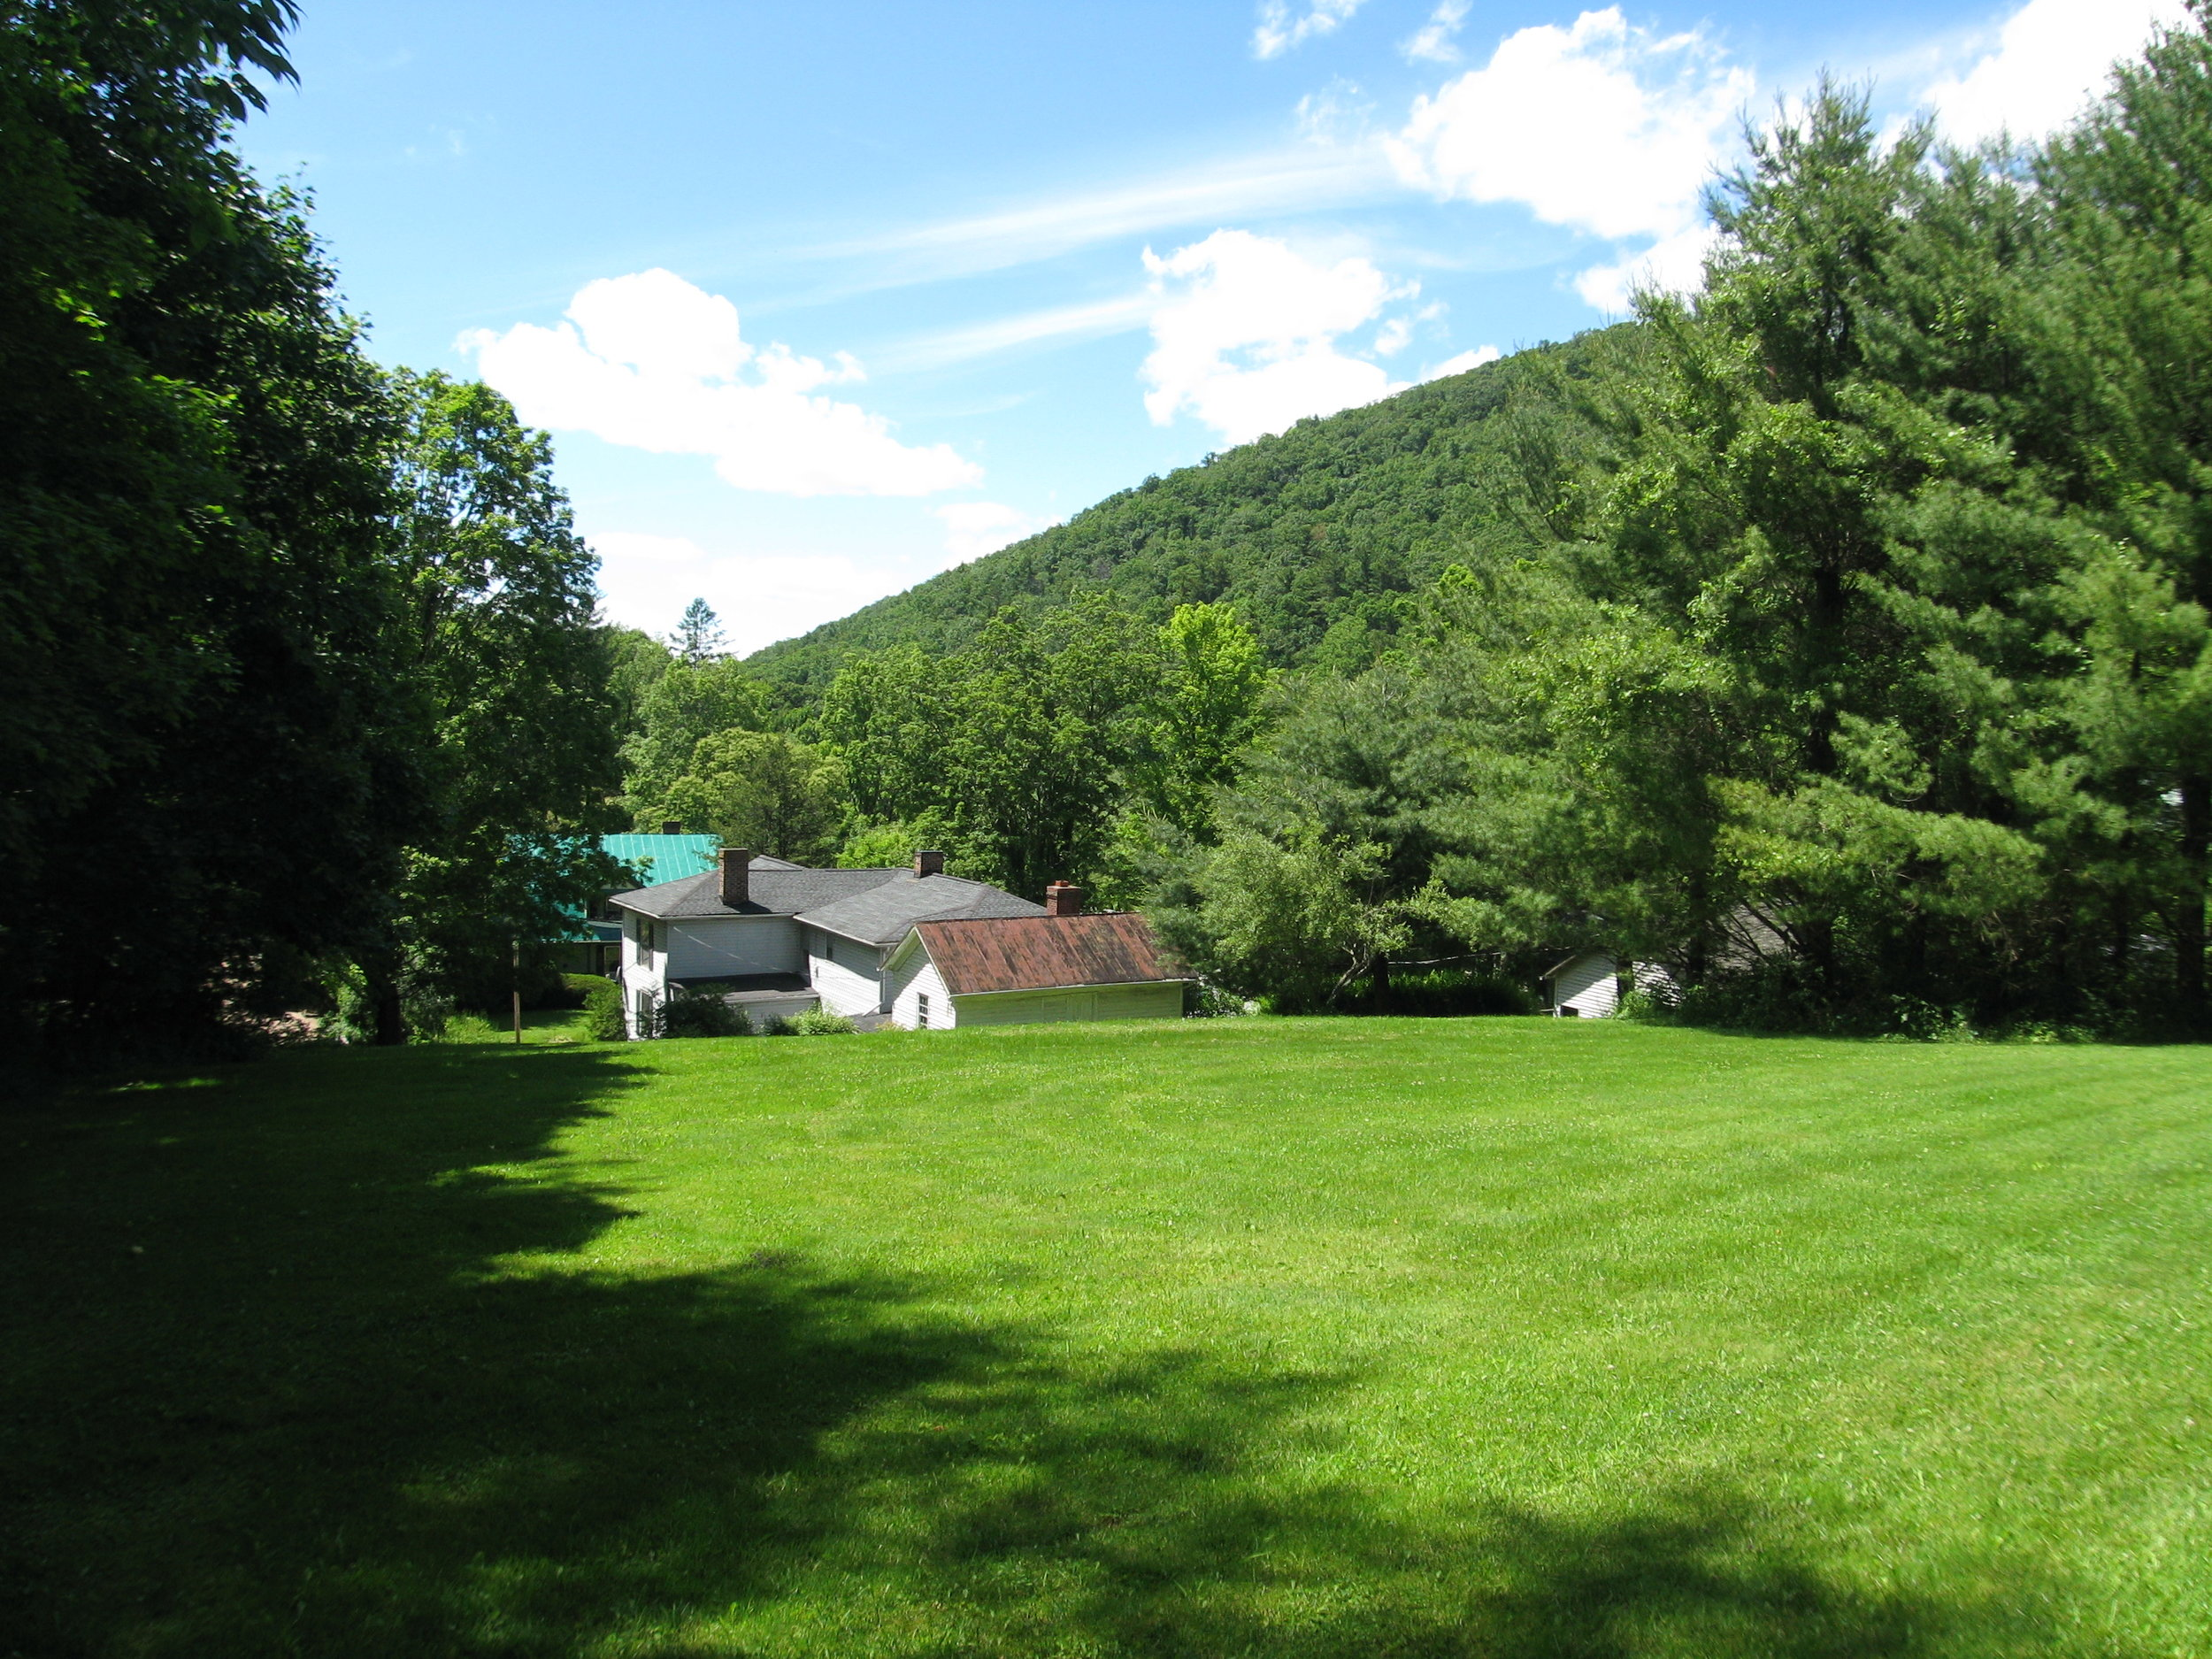 View from Upper Yard to West over Home